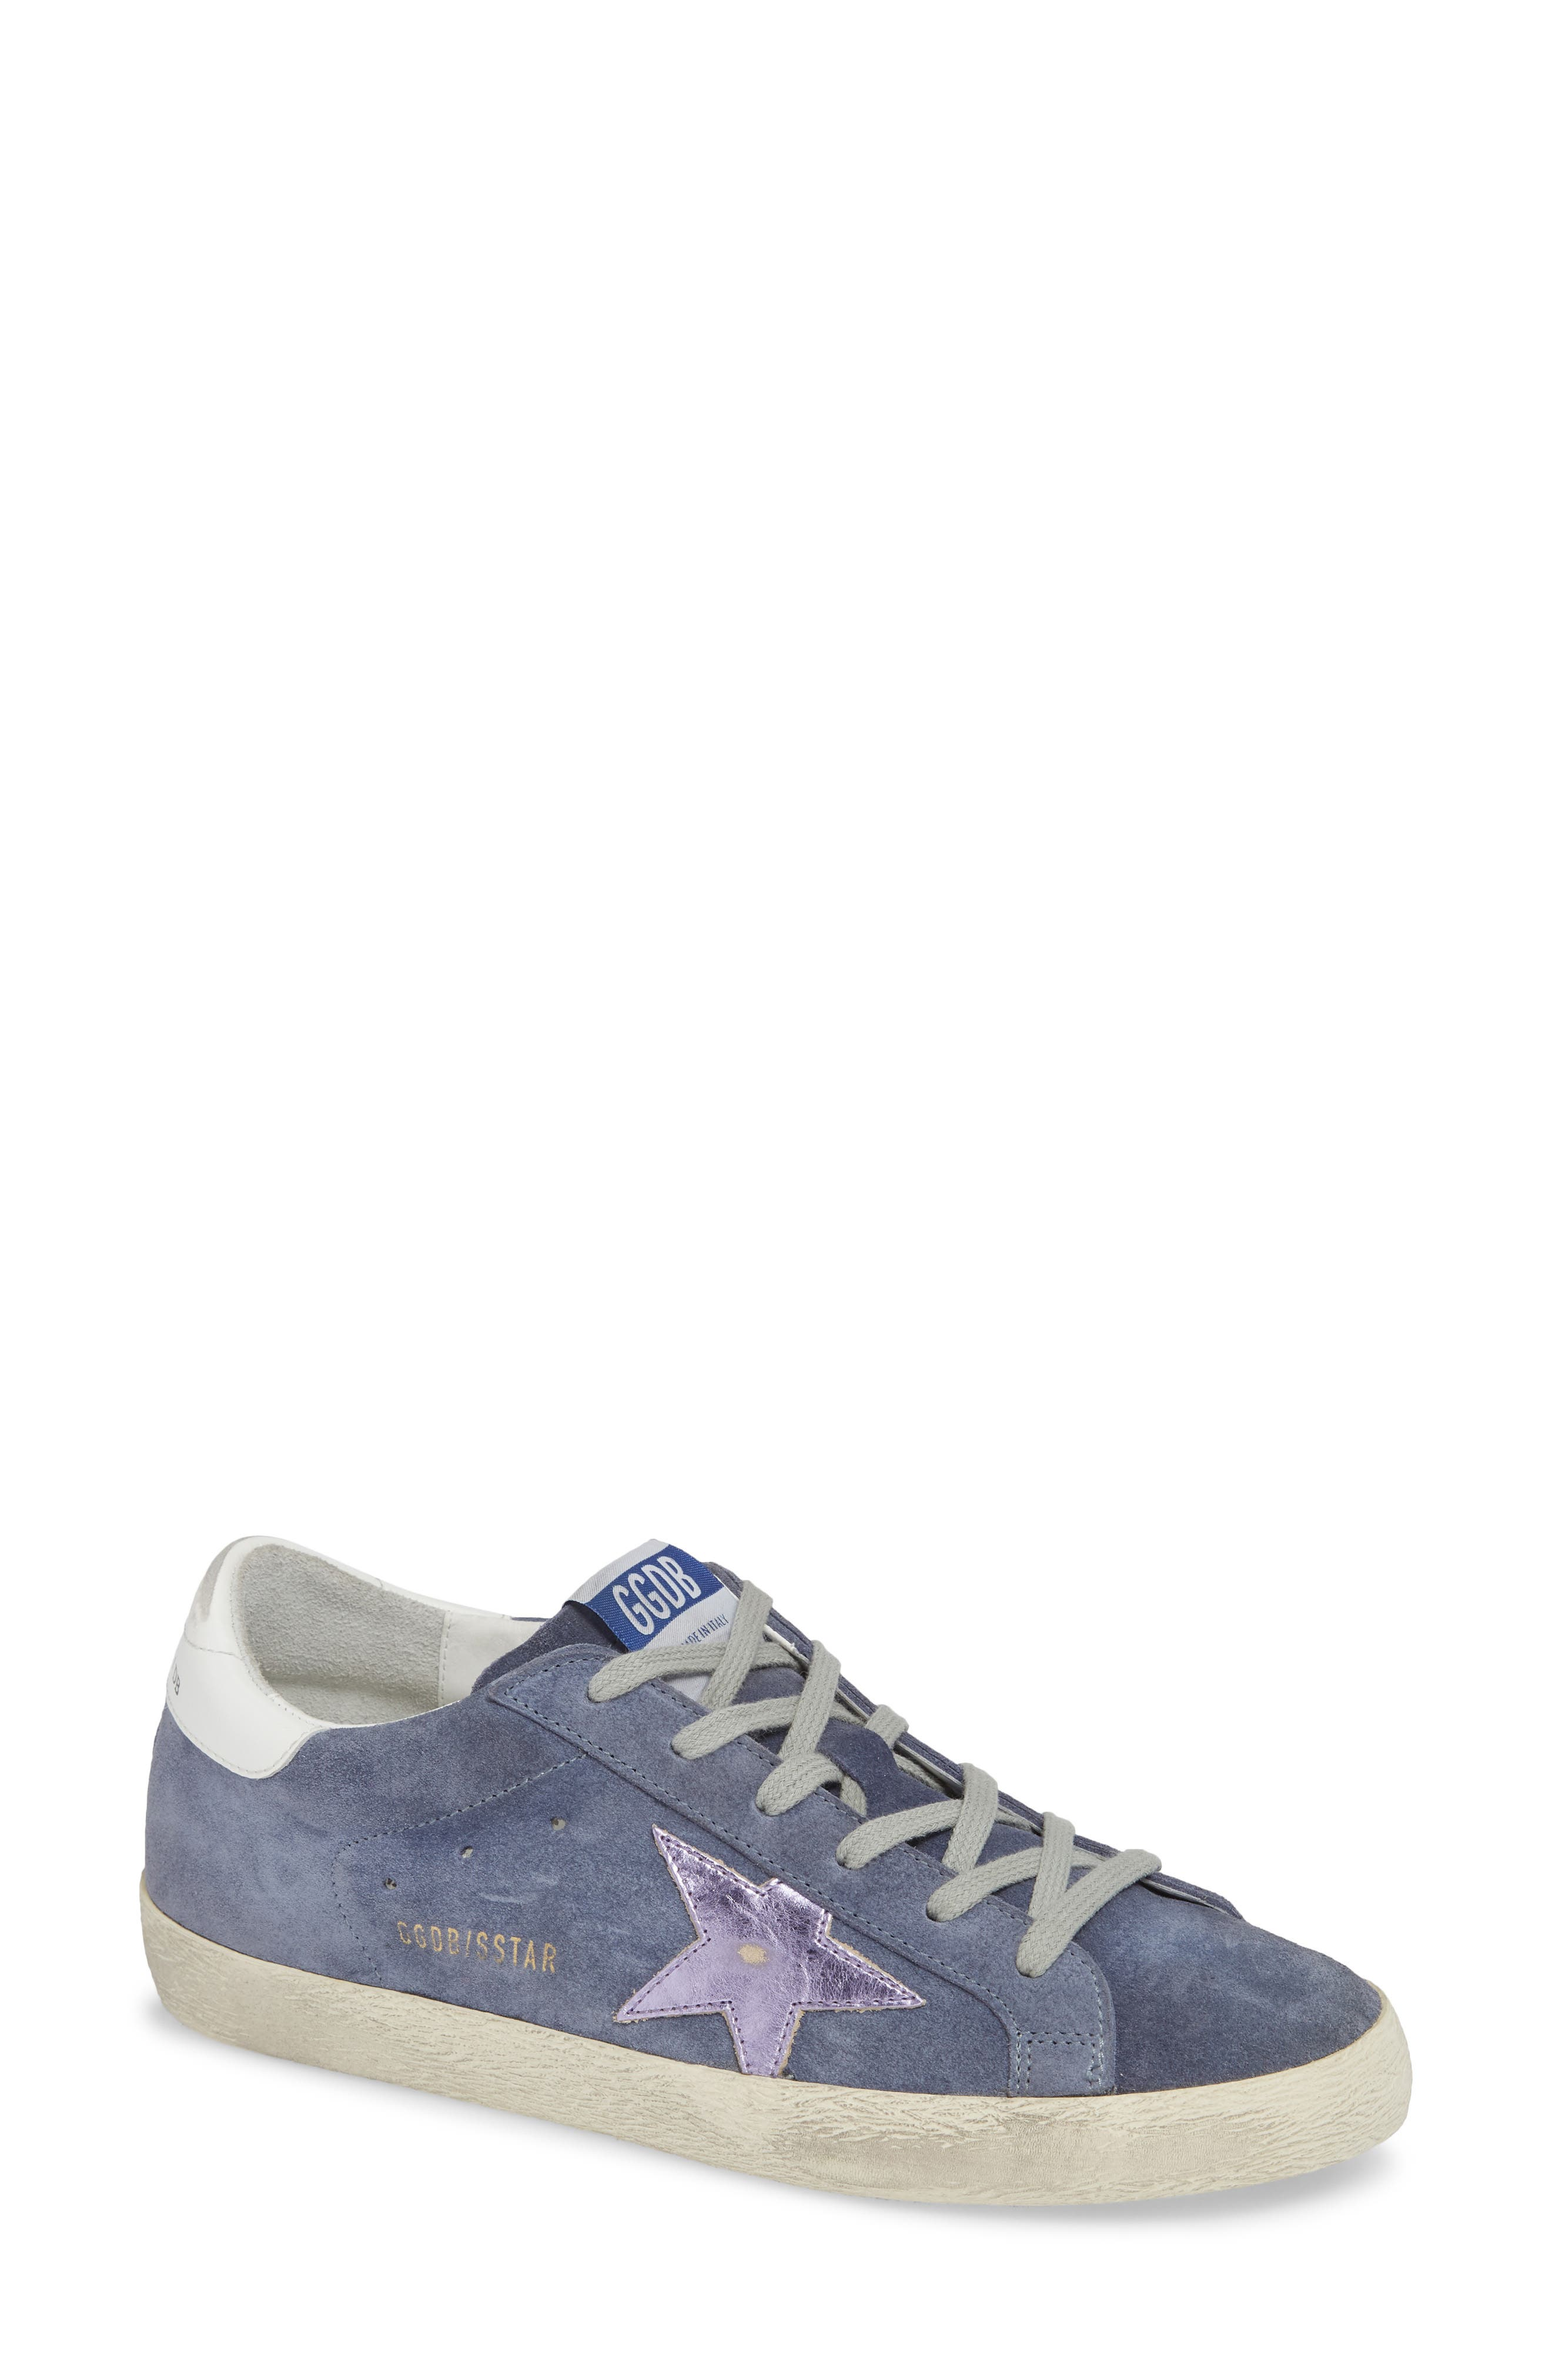 Superstar Suede Platform Low-Top Sneaker With Leather Star in Blue